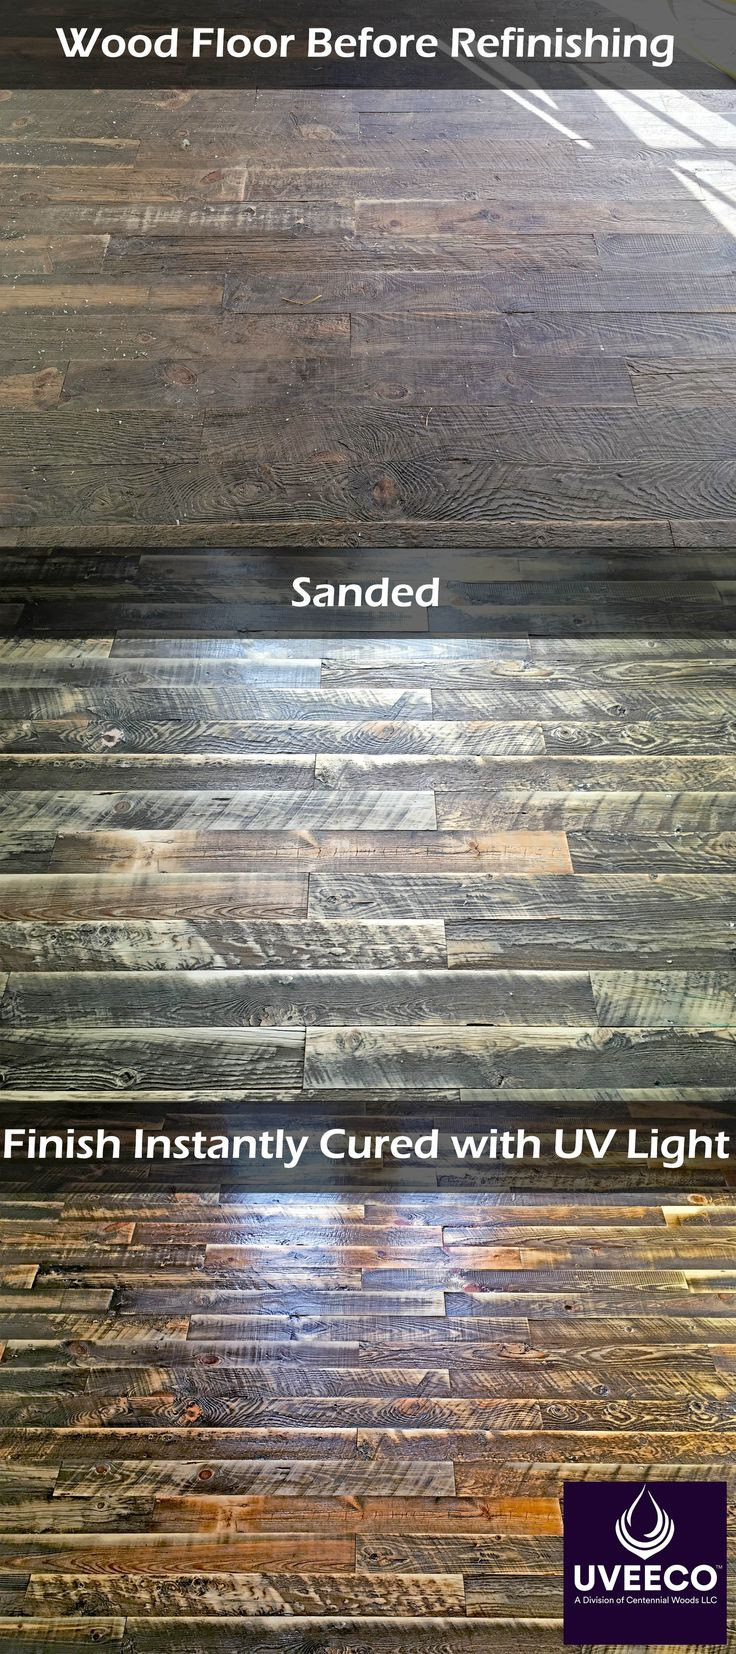 hardwood floor refinishing utah county of 10 best reclaimed wood flooring images on pinterest wood floor in an old floor made with reclaimed tongue and groove boards milled from recycled wyoming snow fence planks gets refinished this floor was coated with uveeco